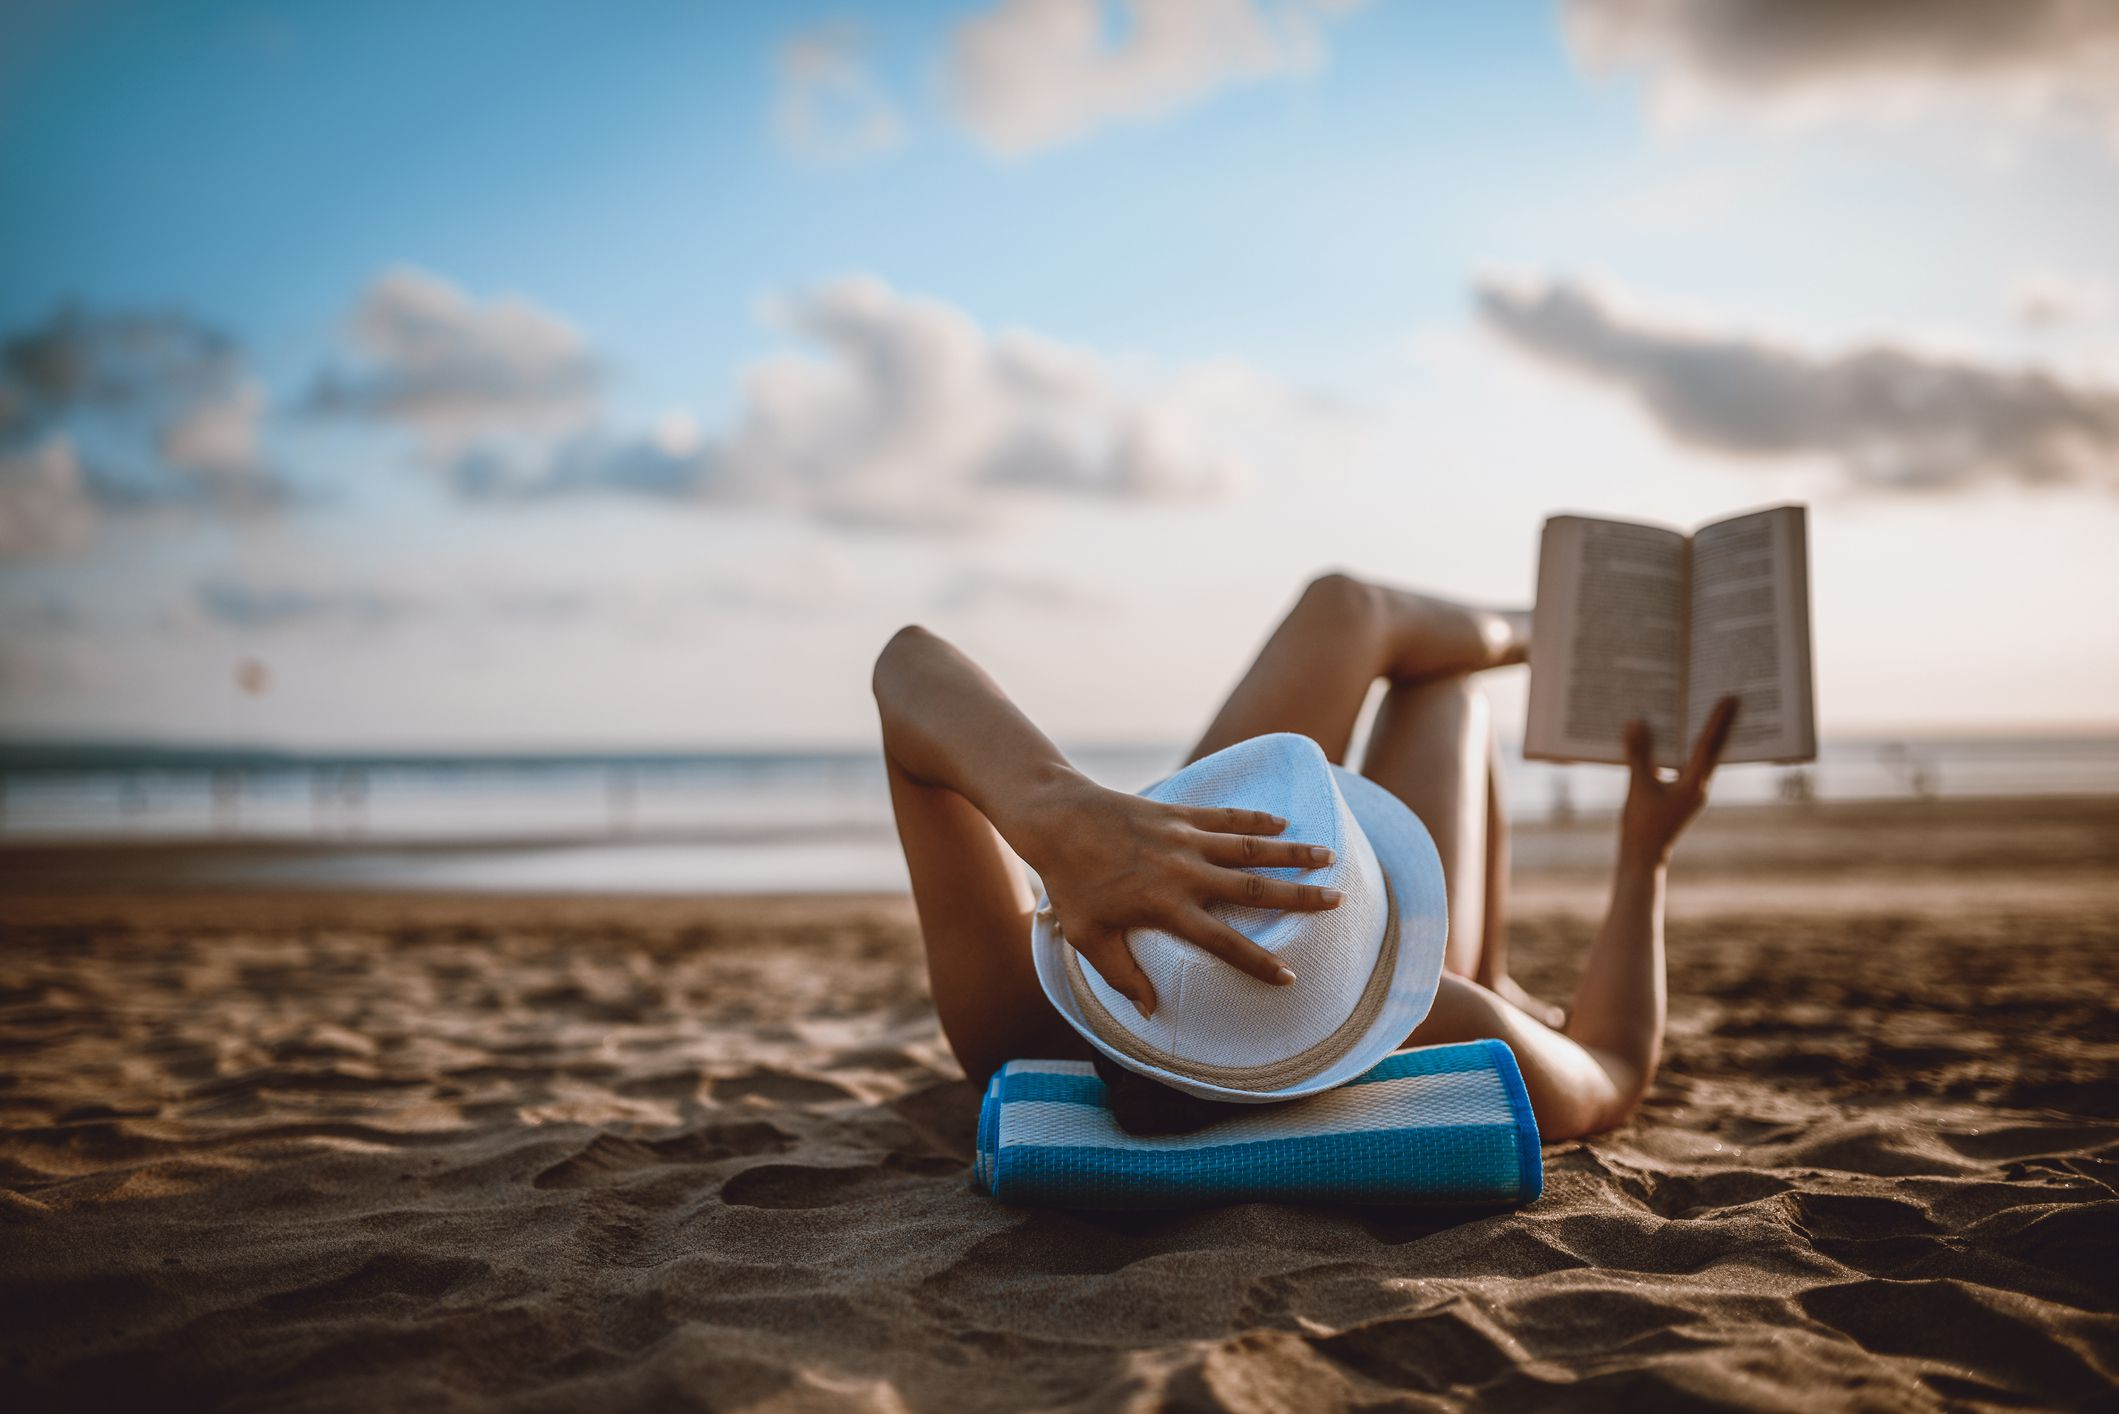 woman-reading-on-beach-5c1ed74646e0fb0001d0254b